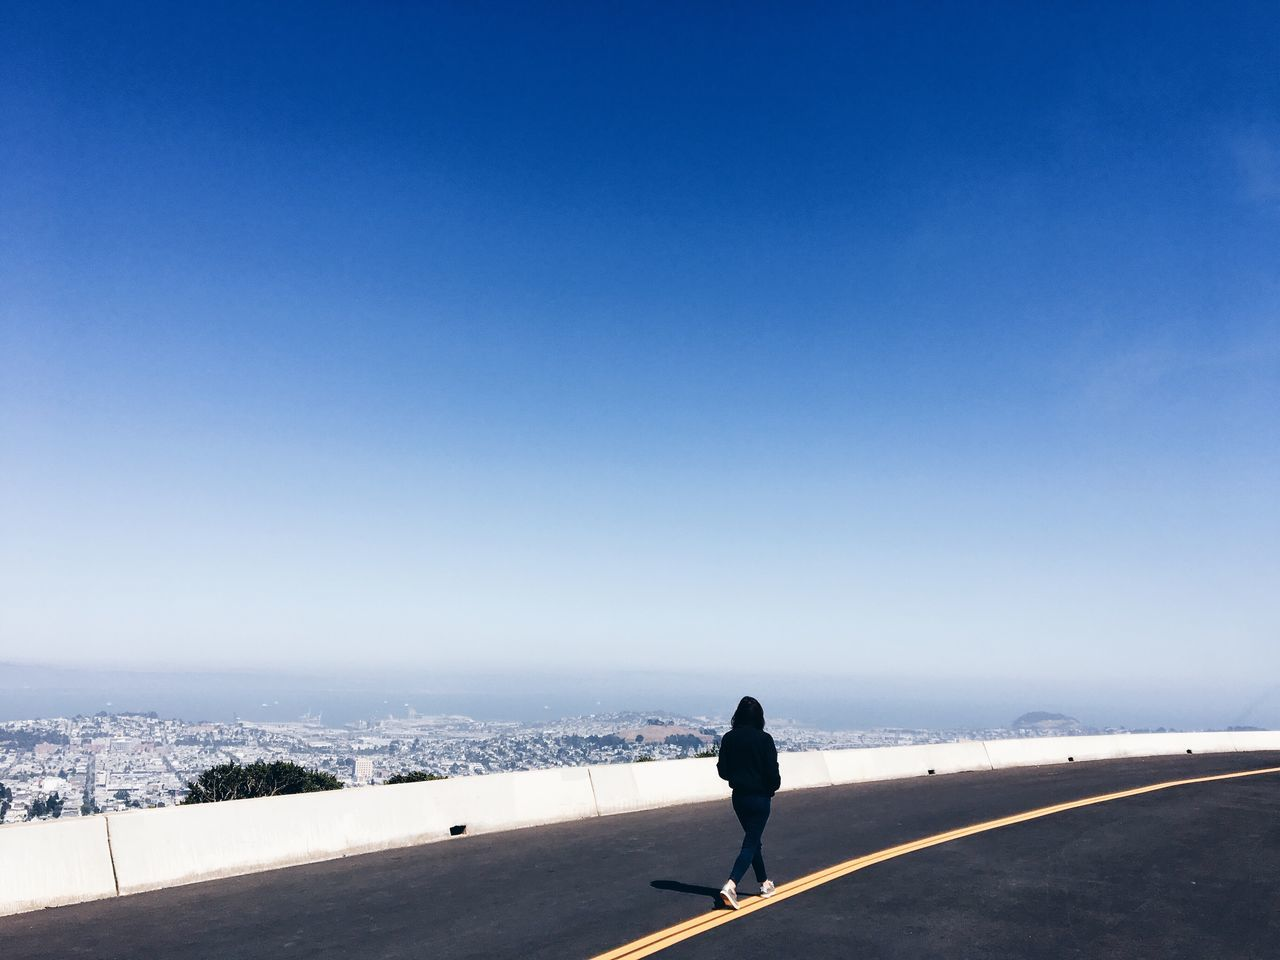 copy space, clear sky, blue, nature, real people, road, one person, full length, outdoors, day, transportation, leisure activity, winter, sunlight, scenics, snow, lifestyles, landscape, women, beauty in nature, mountain, cold temperature, sky, people